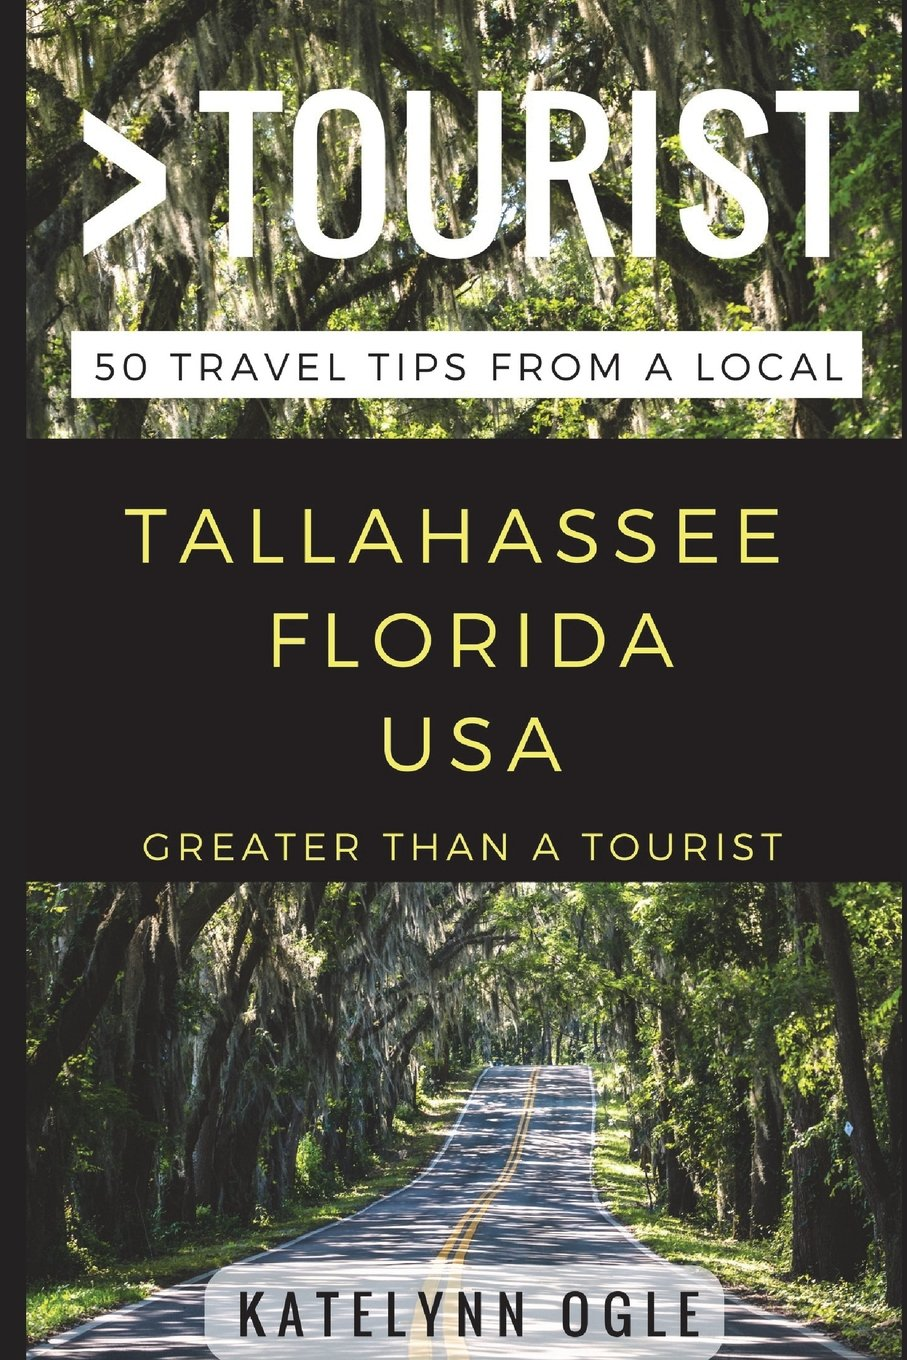 Greater Than a Tourist – Tallahassee, Florida, USA: 50 Travel Tips from a Local pdf epub